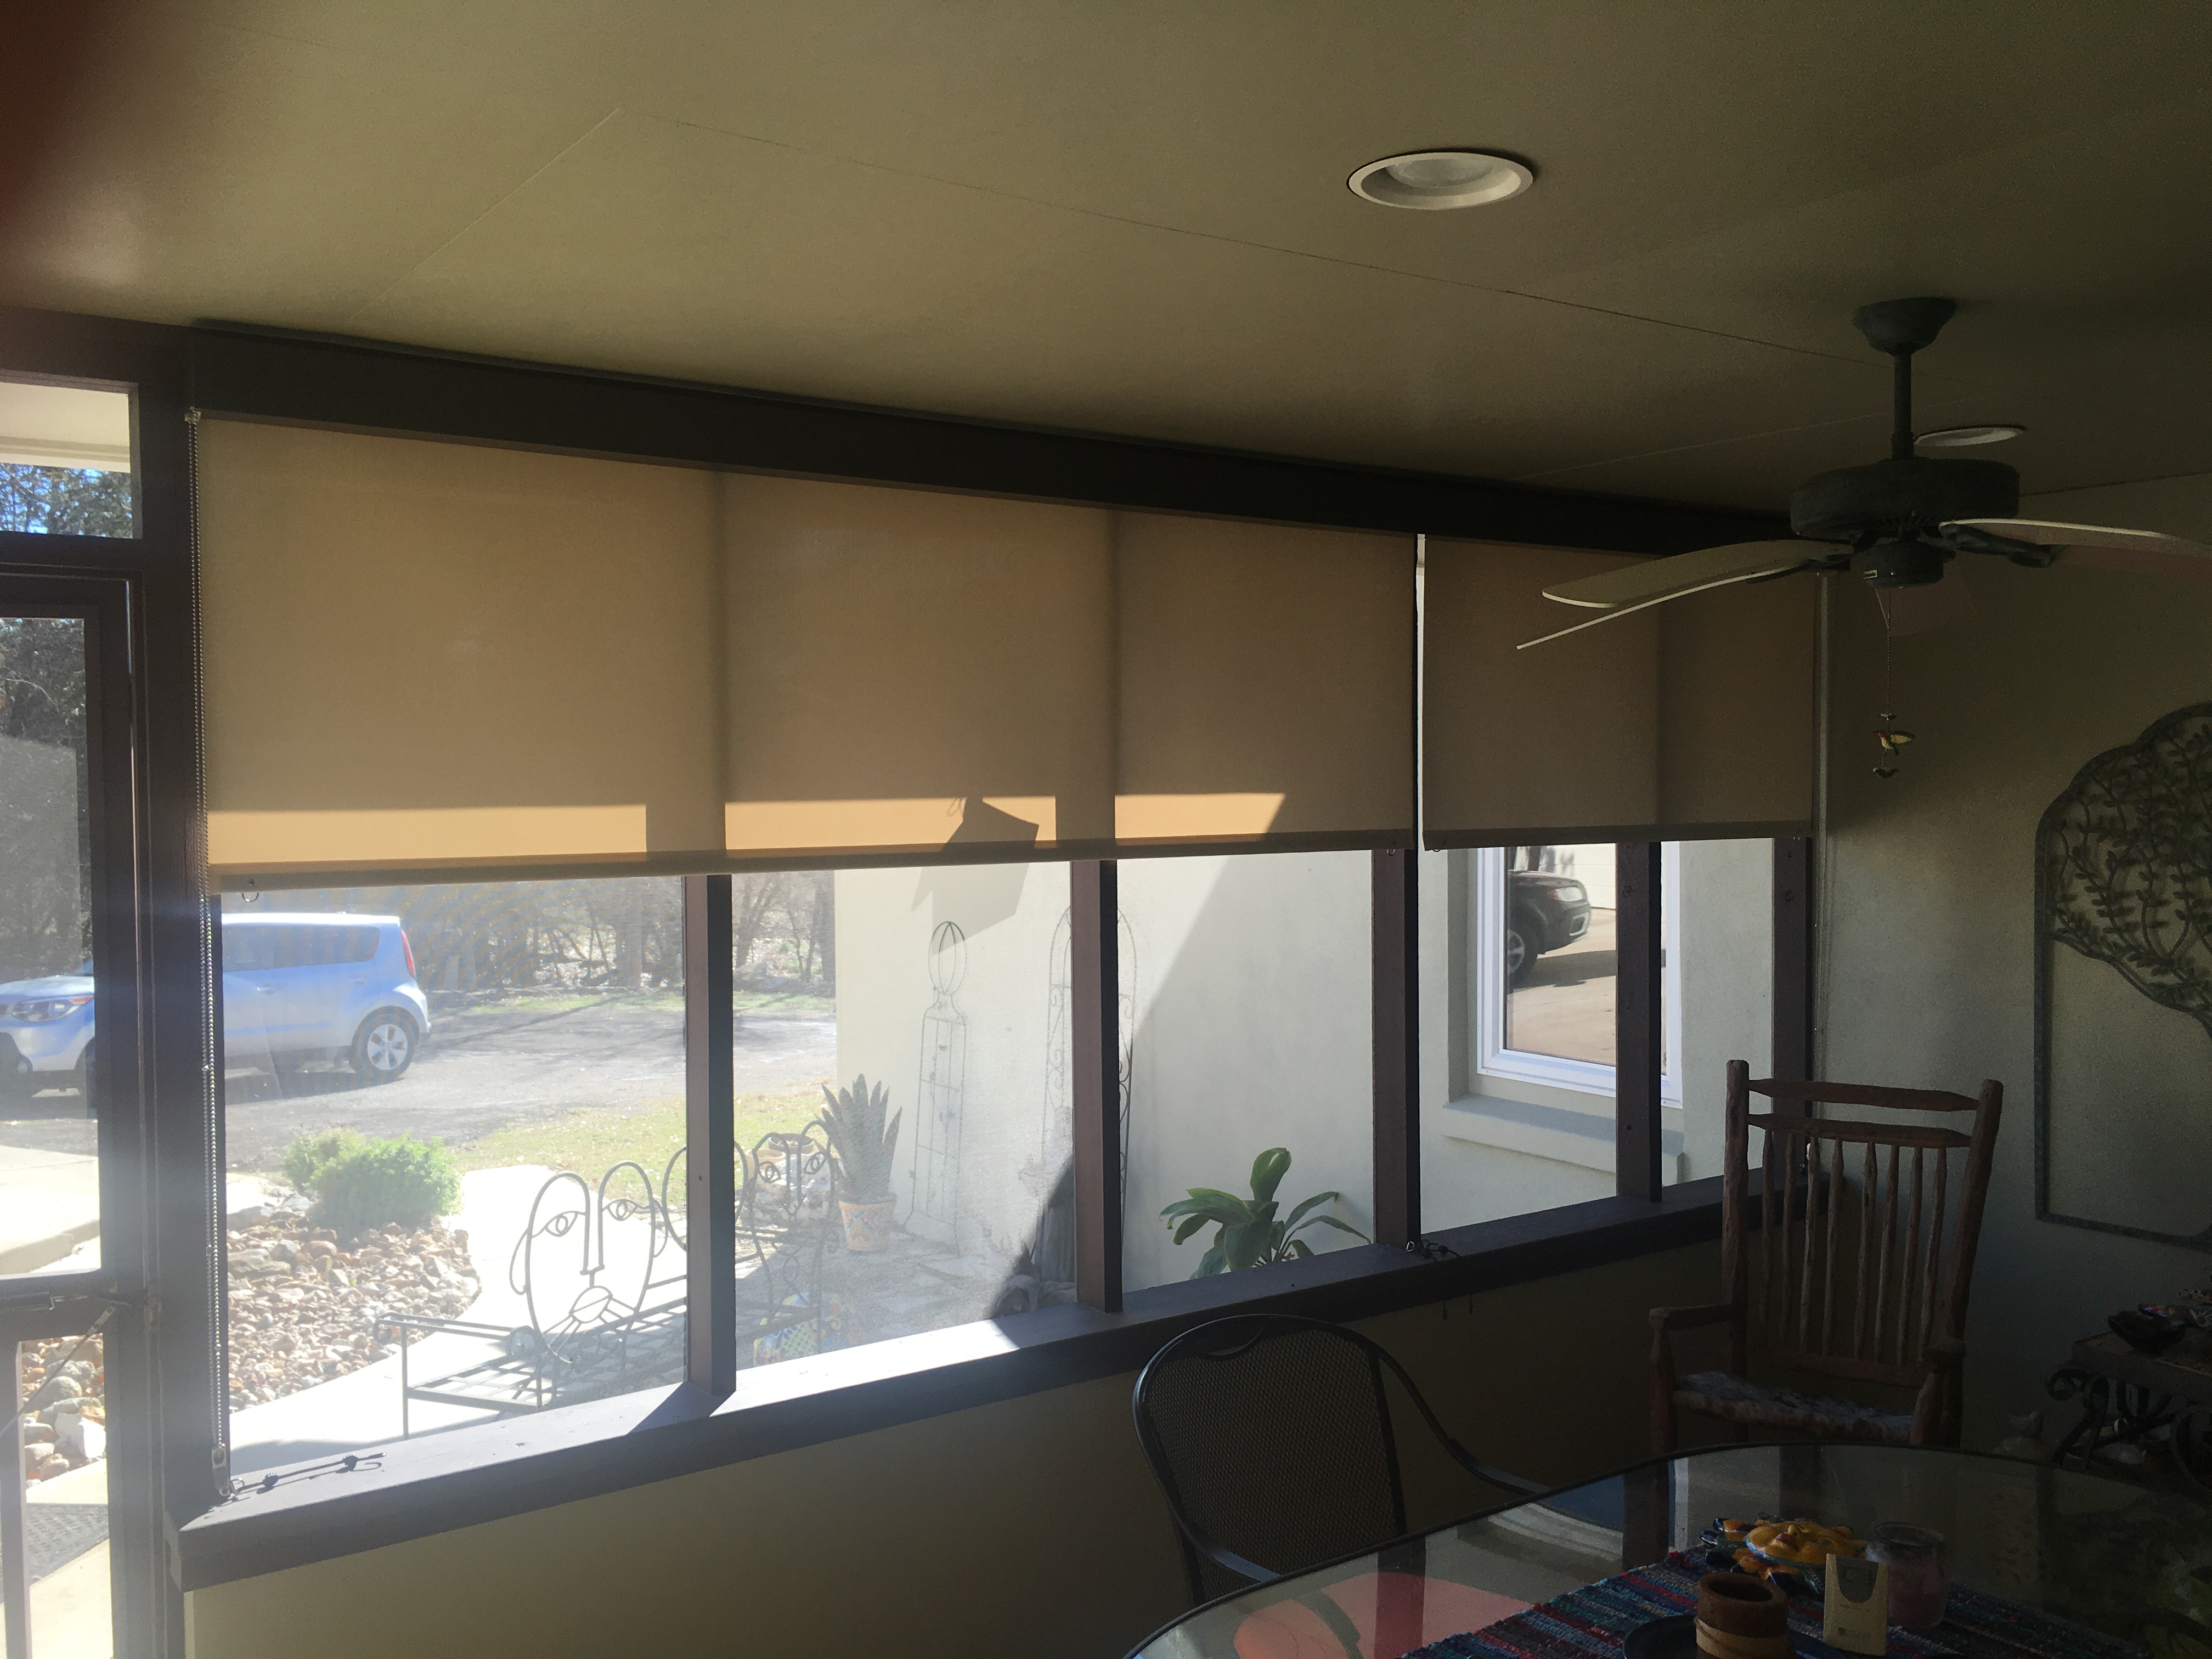 Kerrville Window Fashions image 0